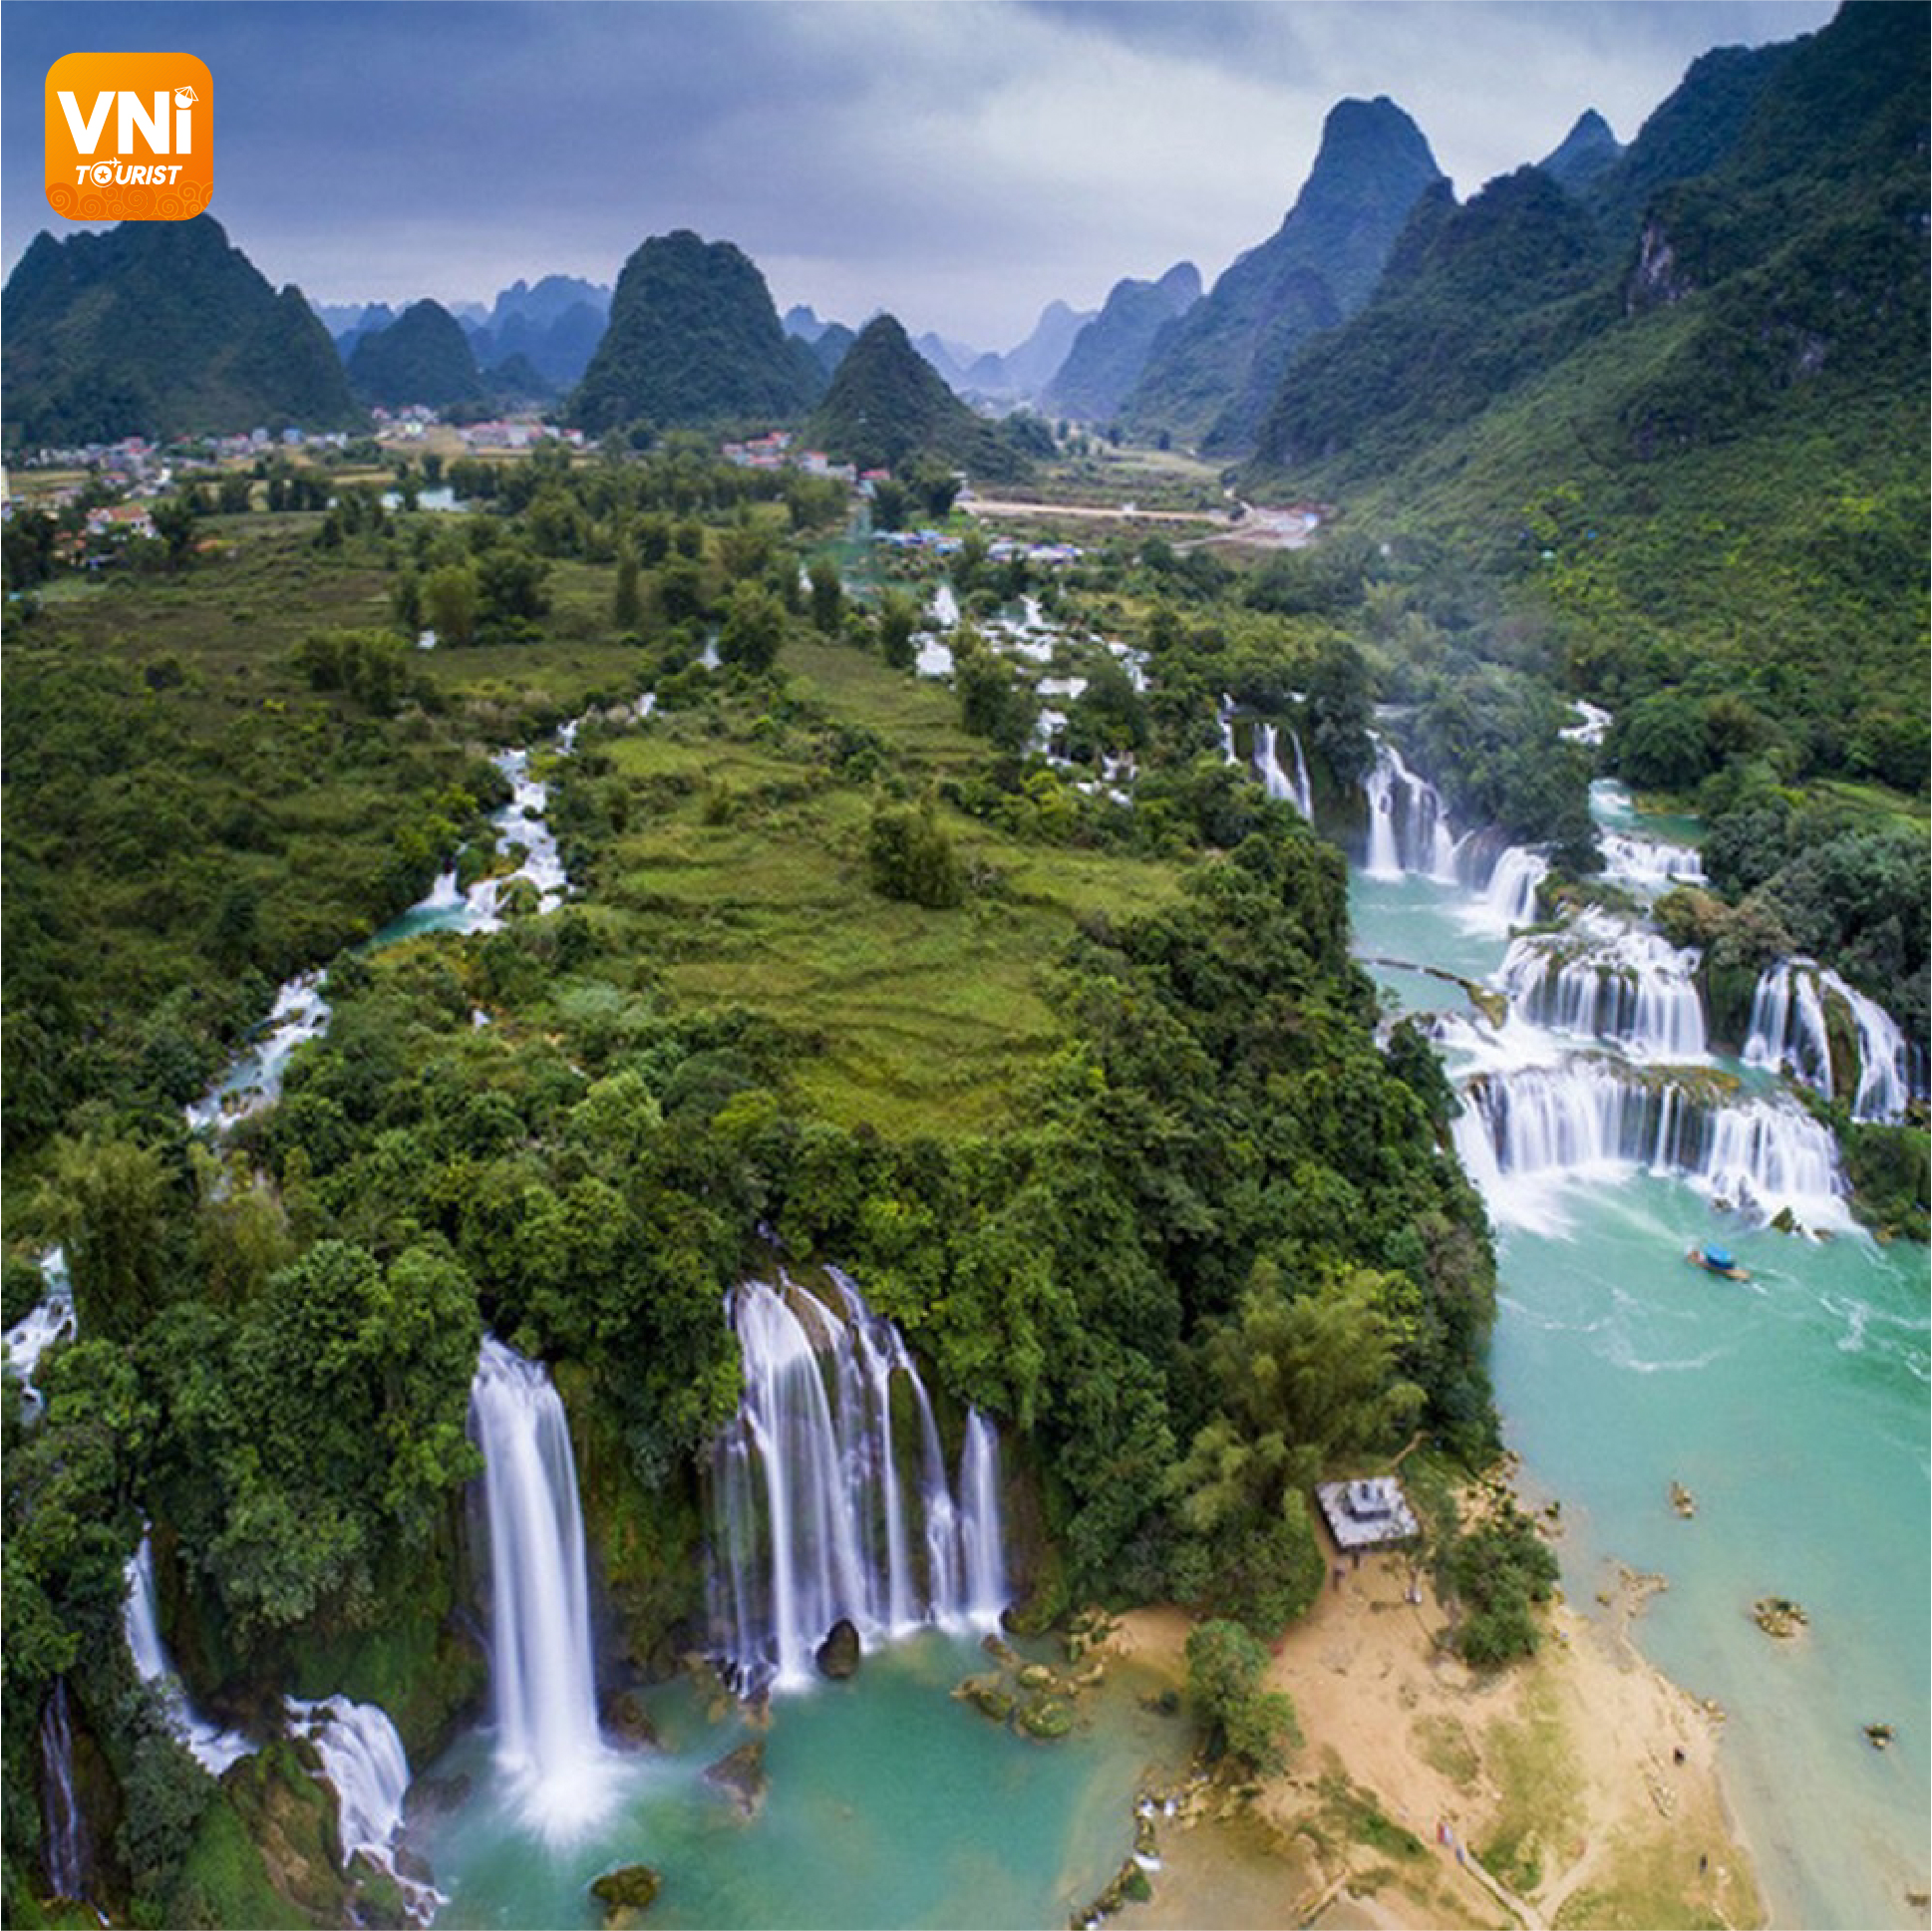 THE-SPECIAL-BAN-GIOC-WATERFALL-FESTIVAL-WITH-MANY-EXCITING-ACTIVITIES-01